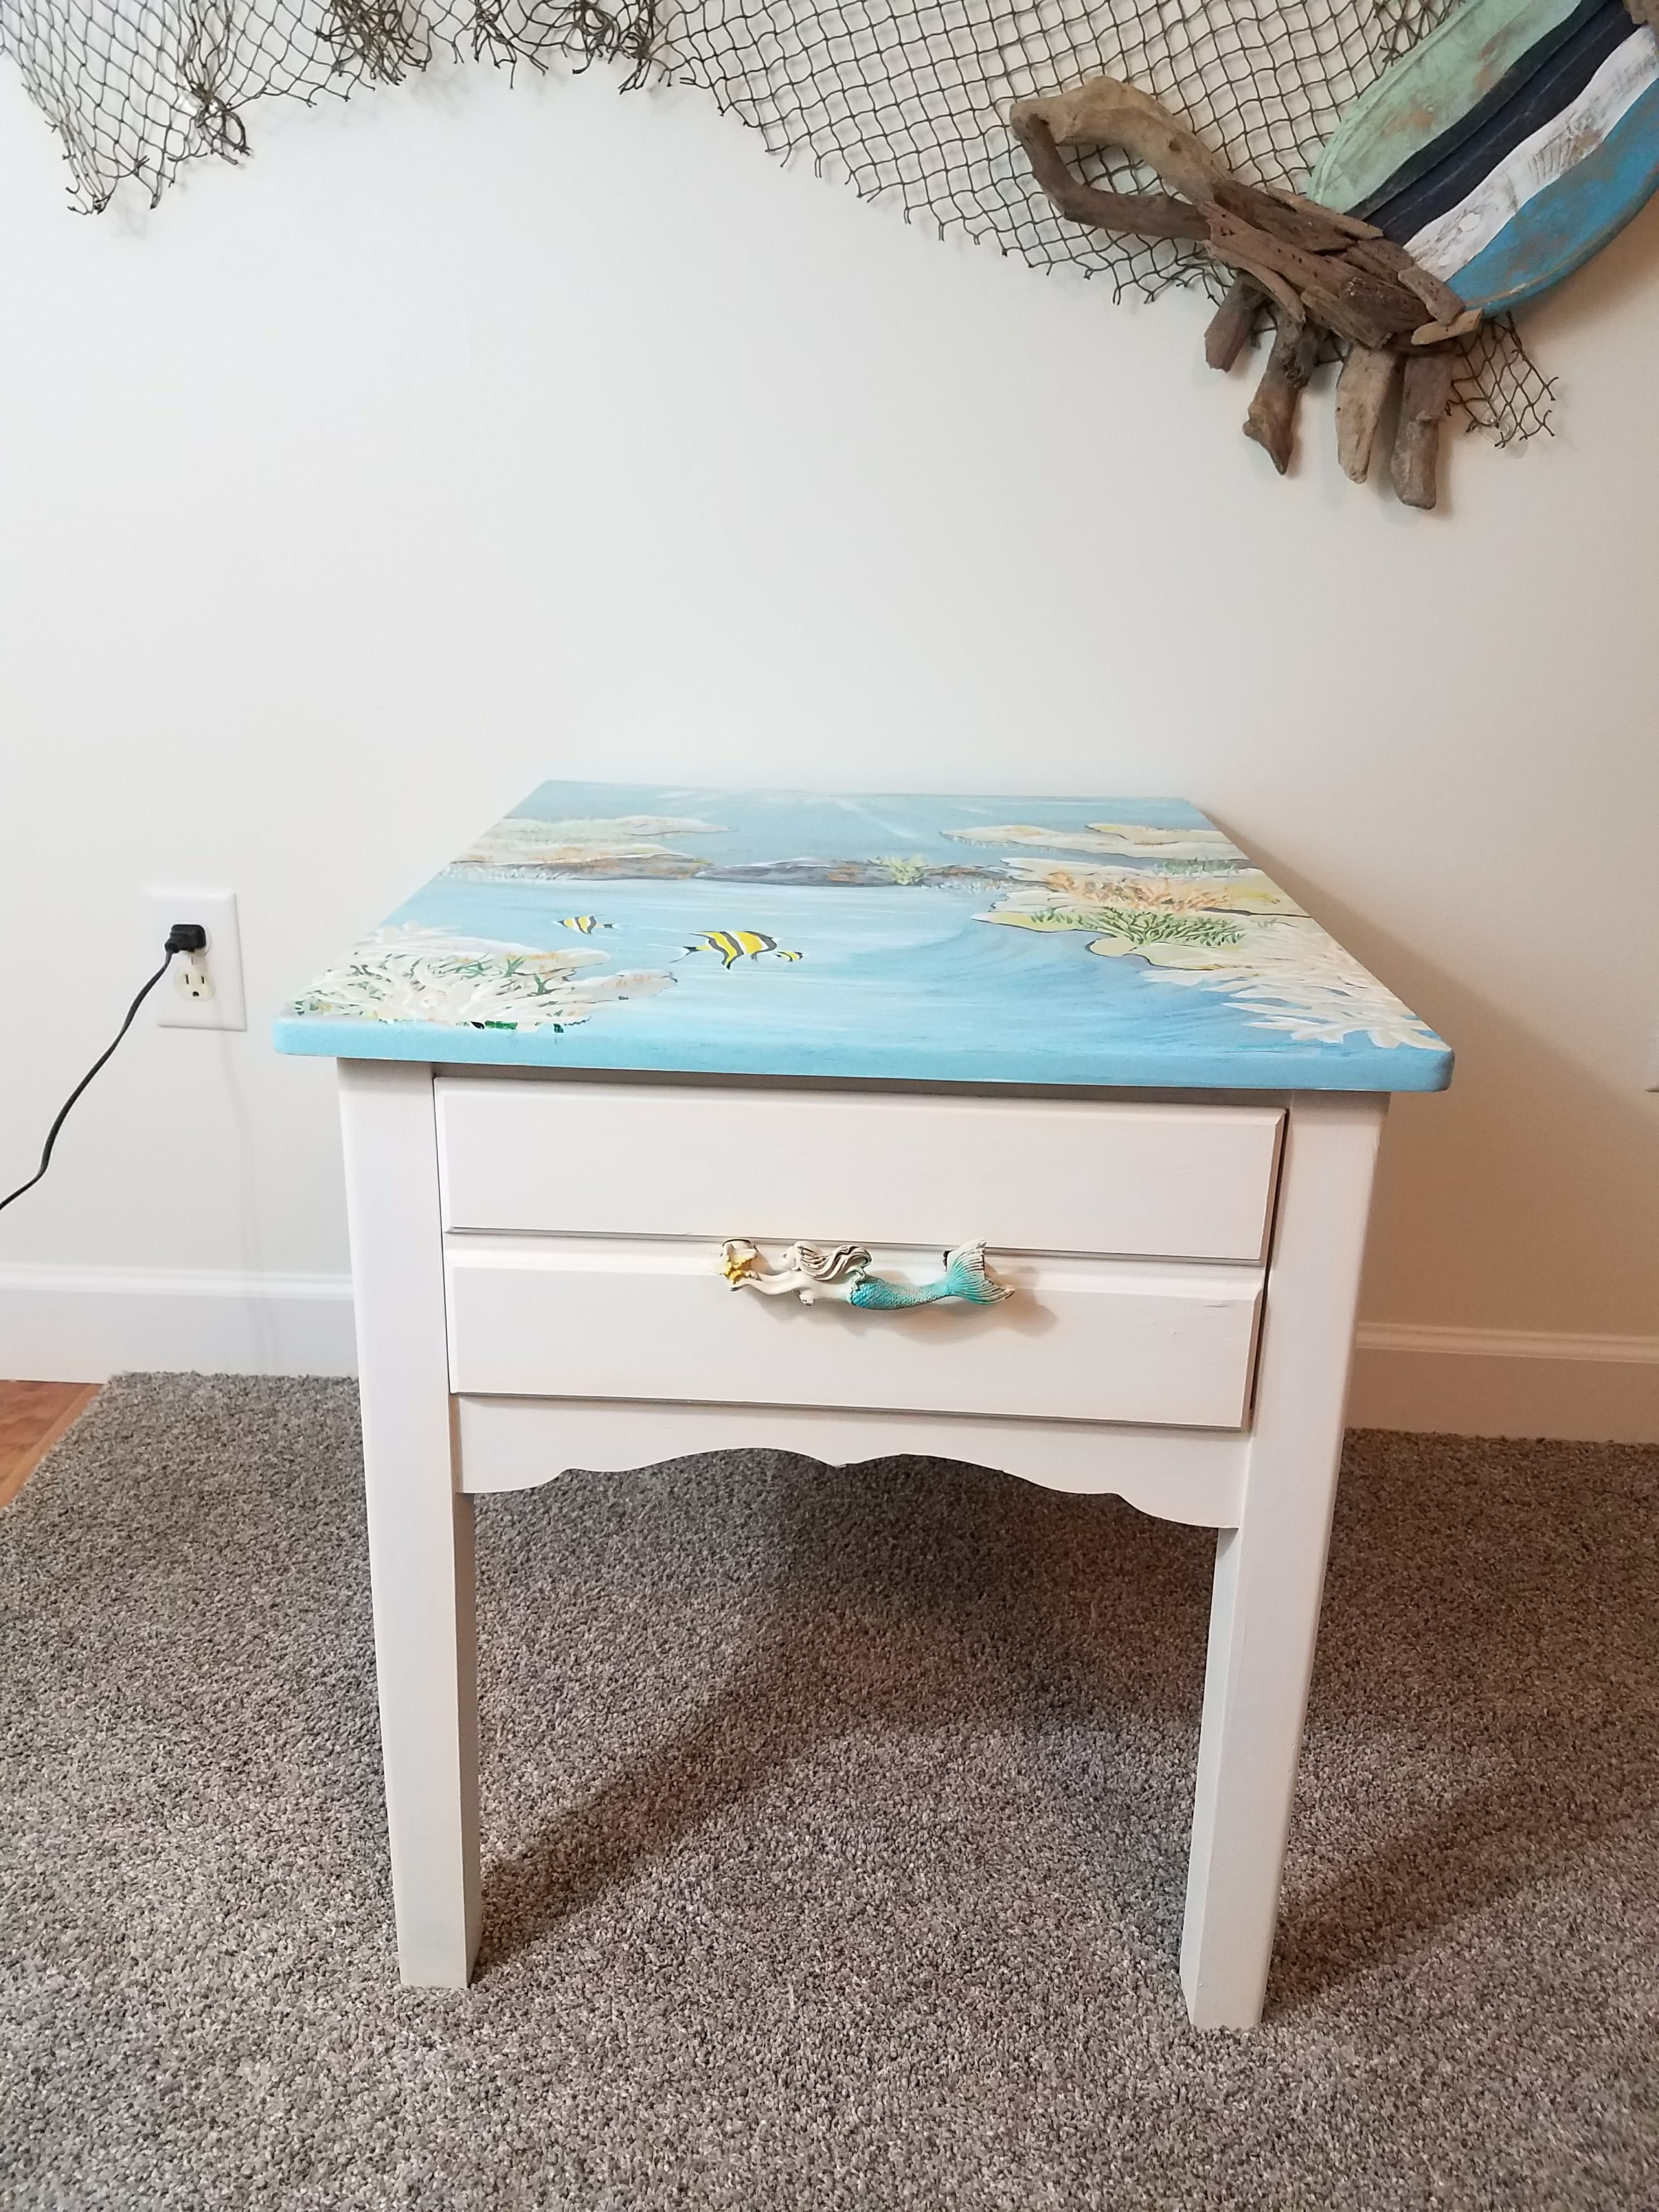 compass pull and popular nautical mermaid drawers themed knob uncategorized drawer best trend the xfile pict coastal beach pulls of ceramic